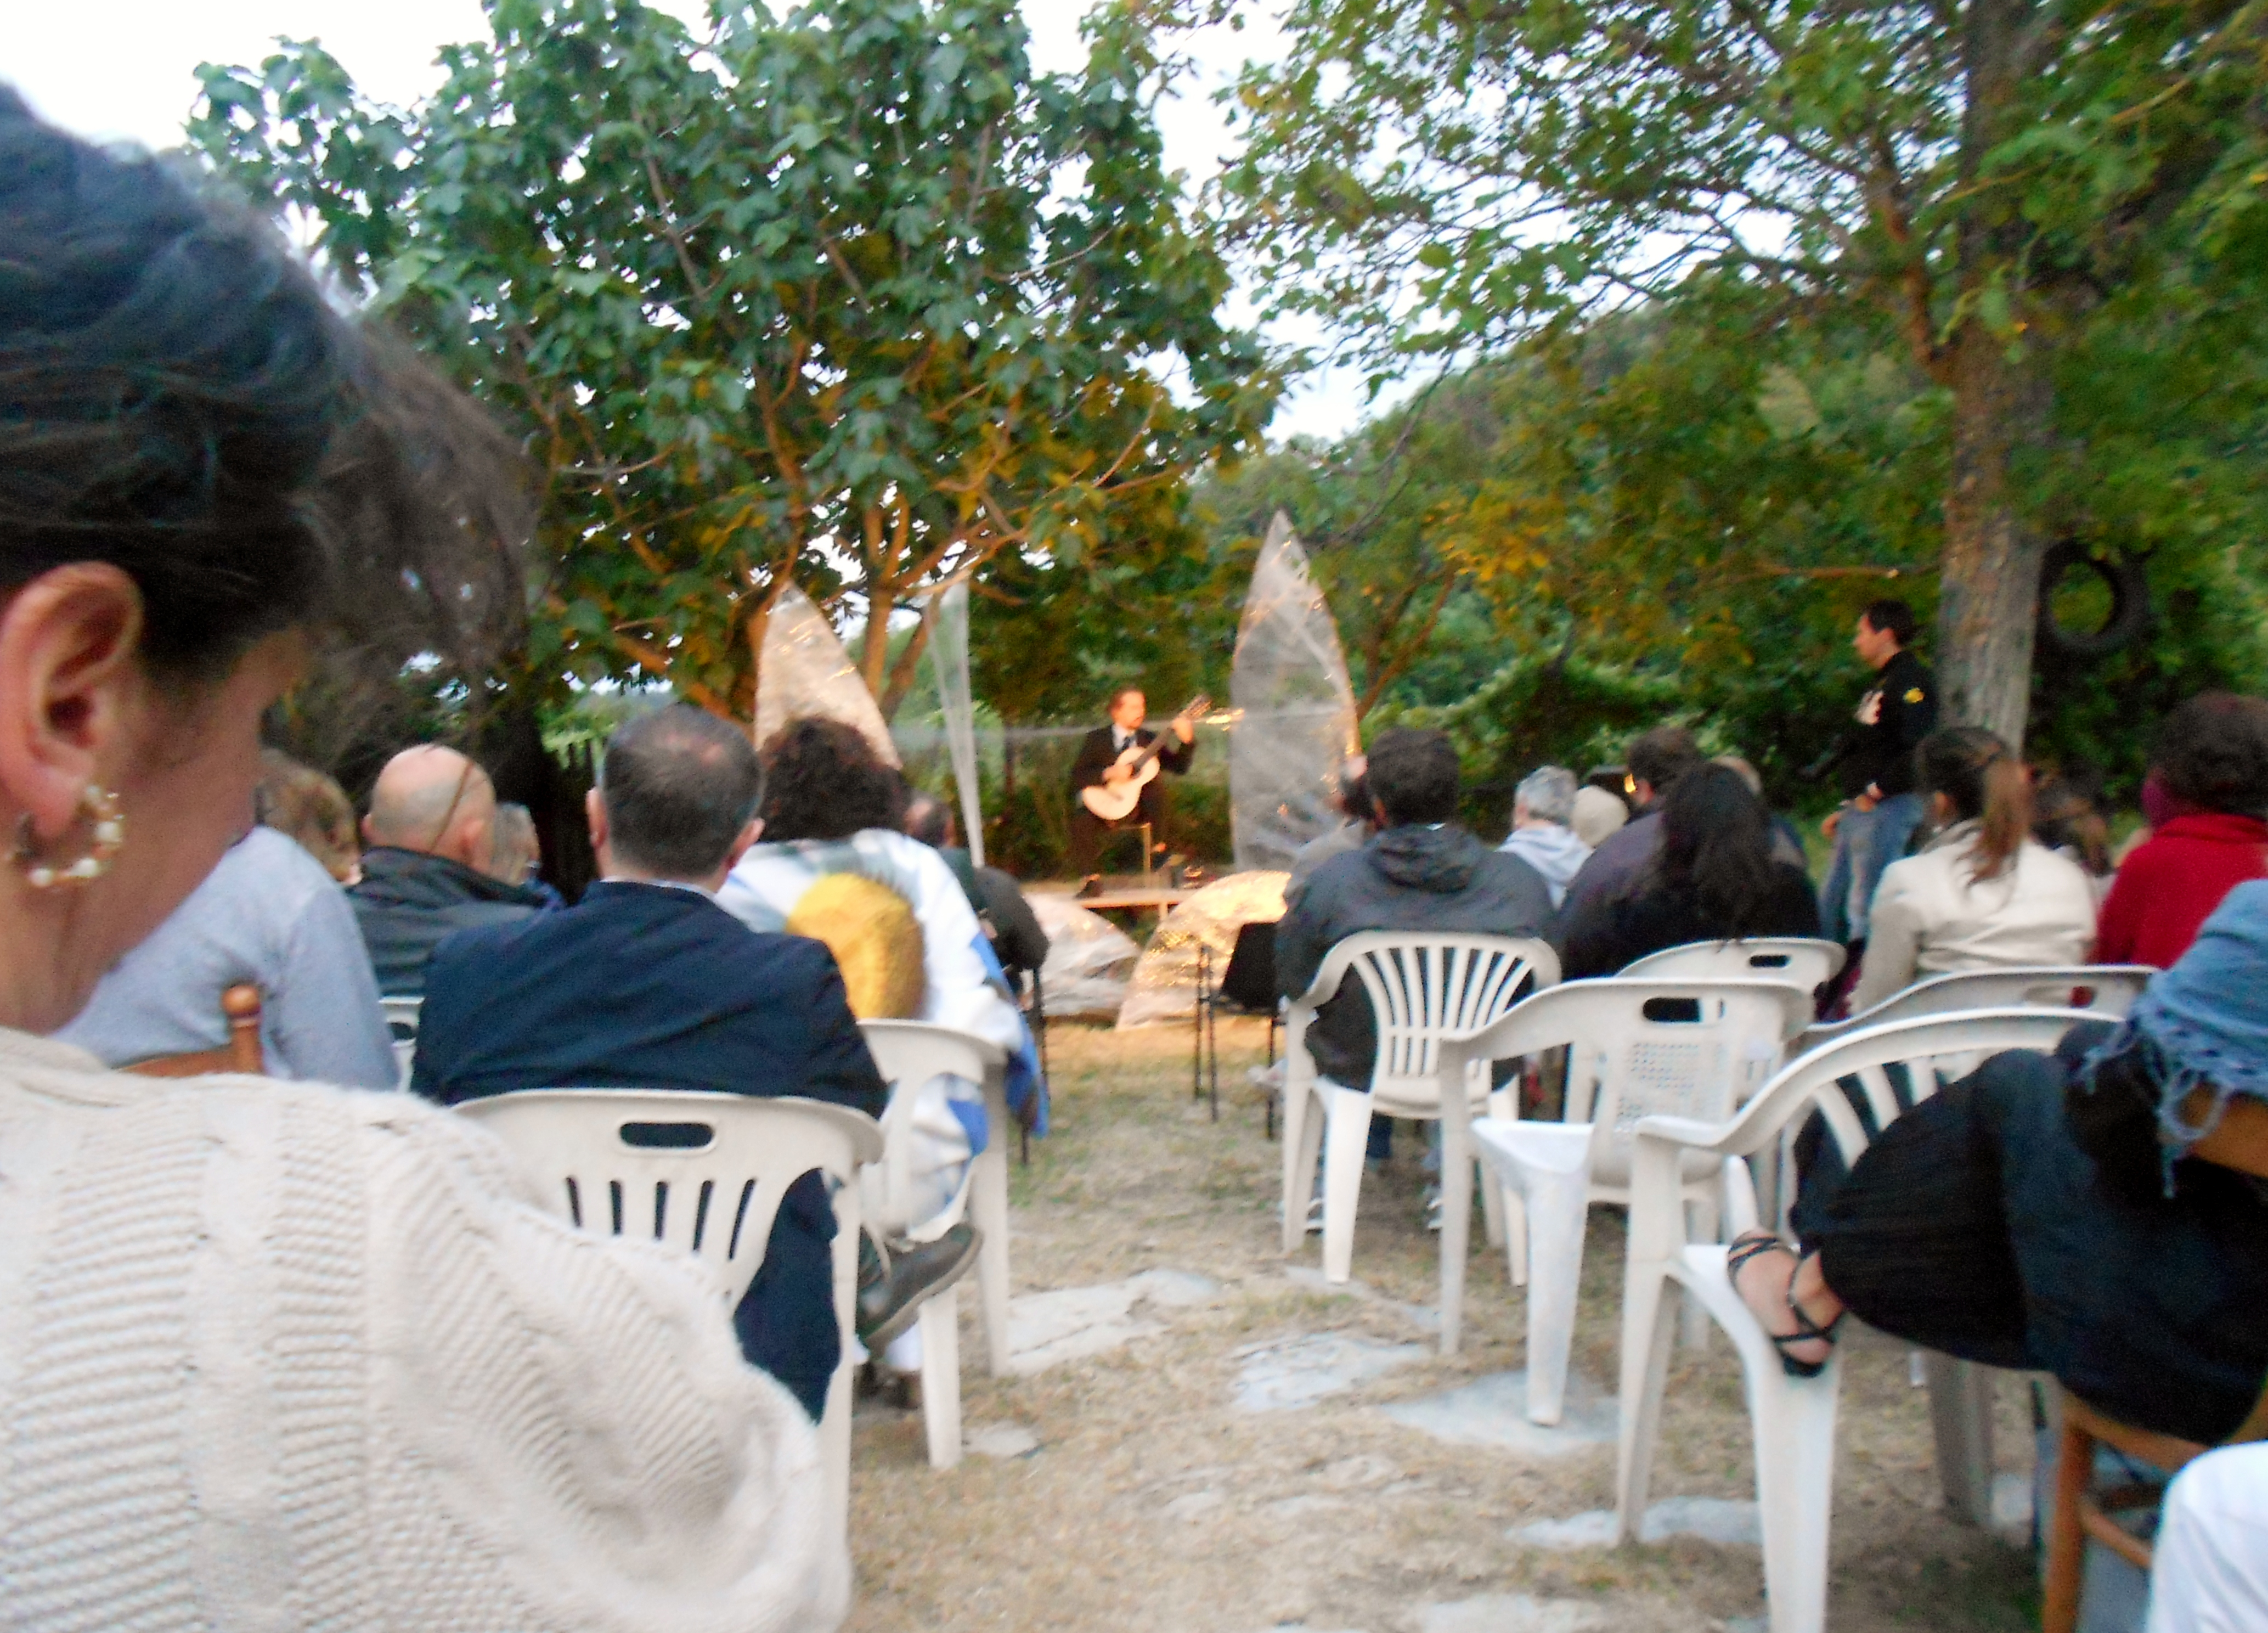 A night of classical music in the Tuscan countryside